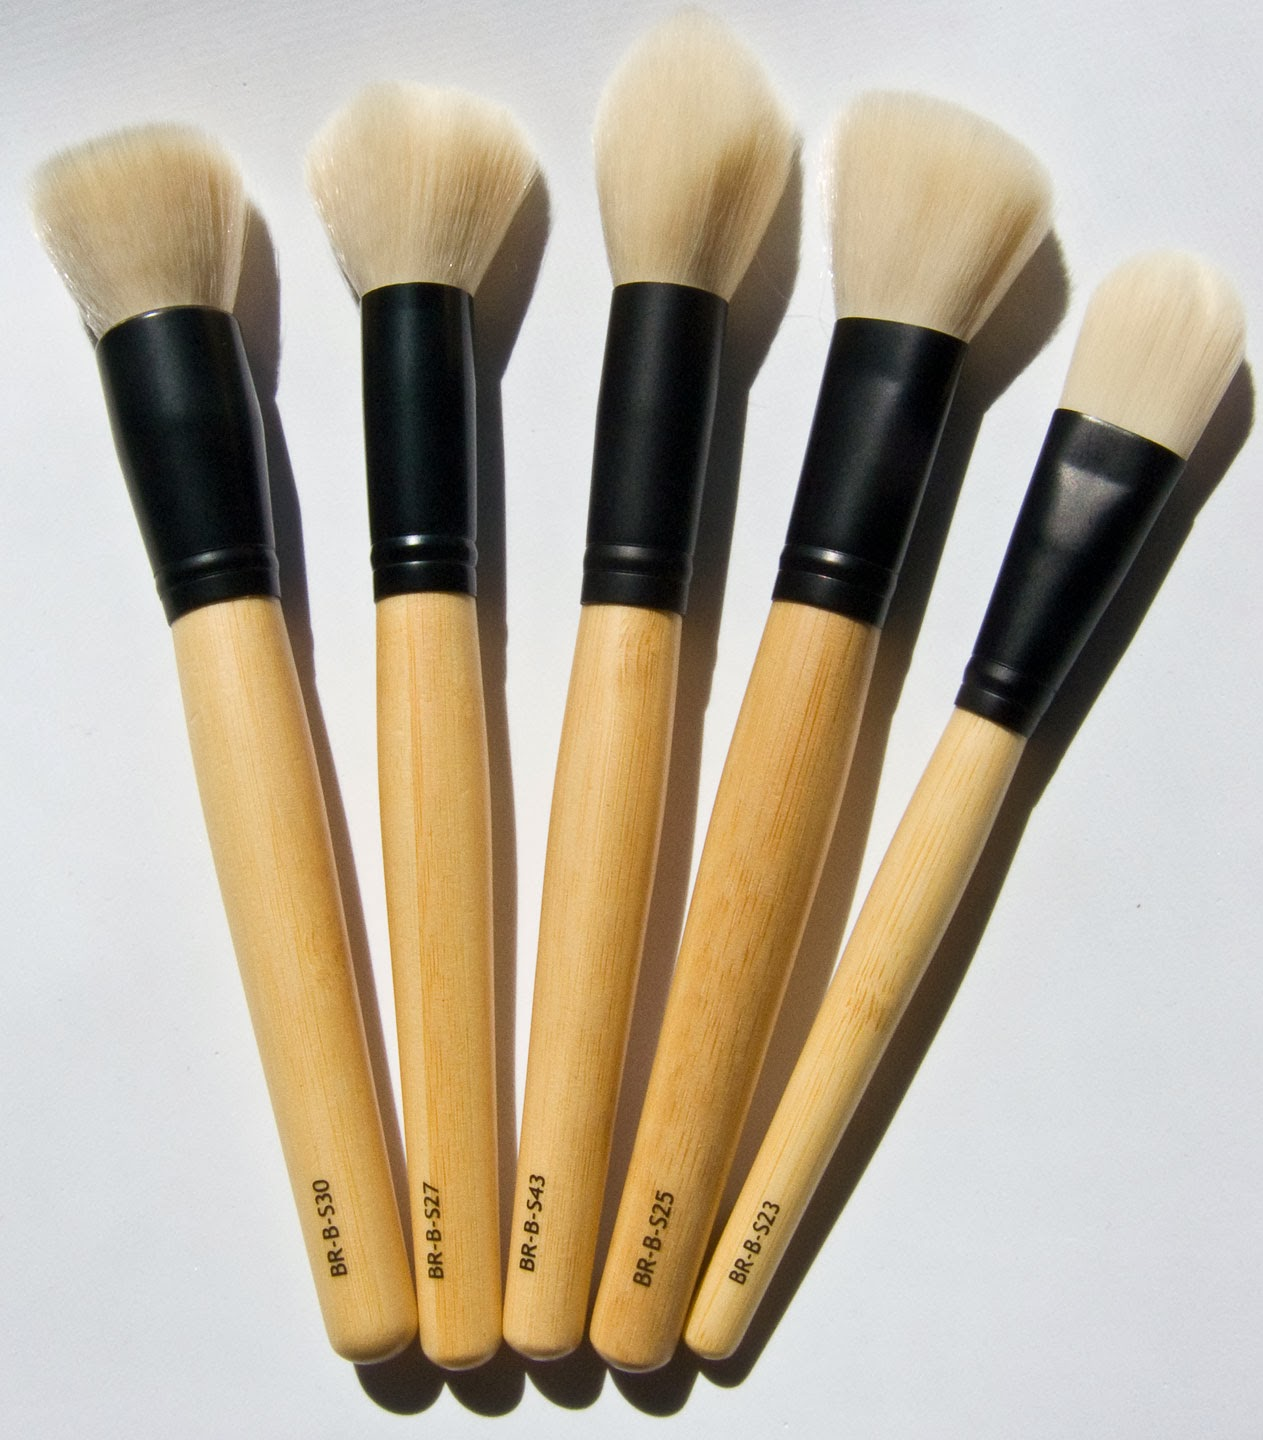 coastal scents brushes. elite coastal scents brushes